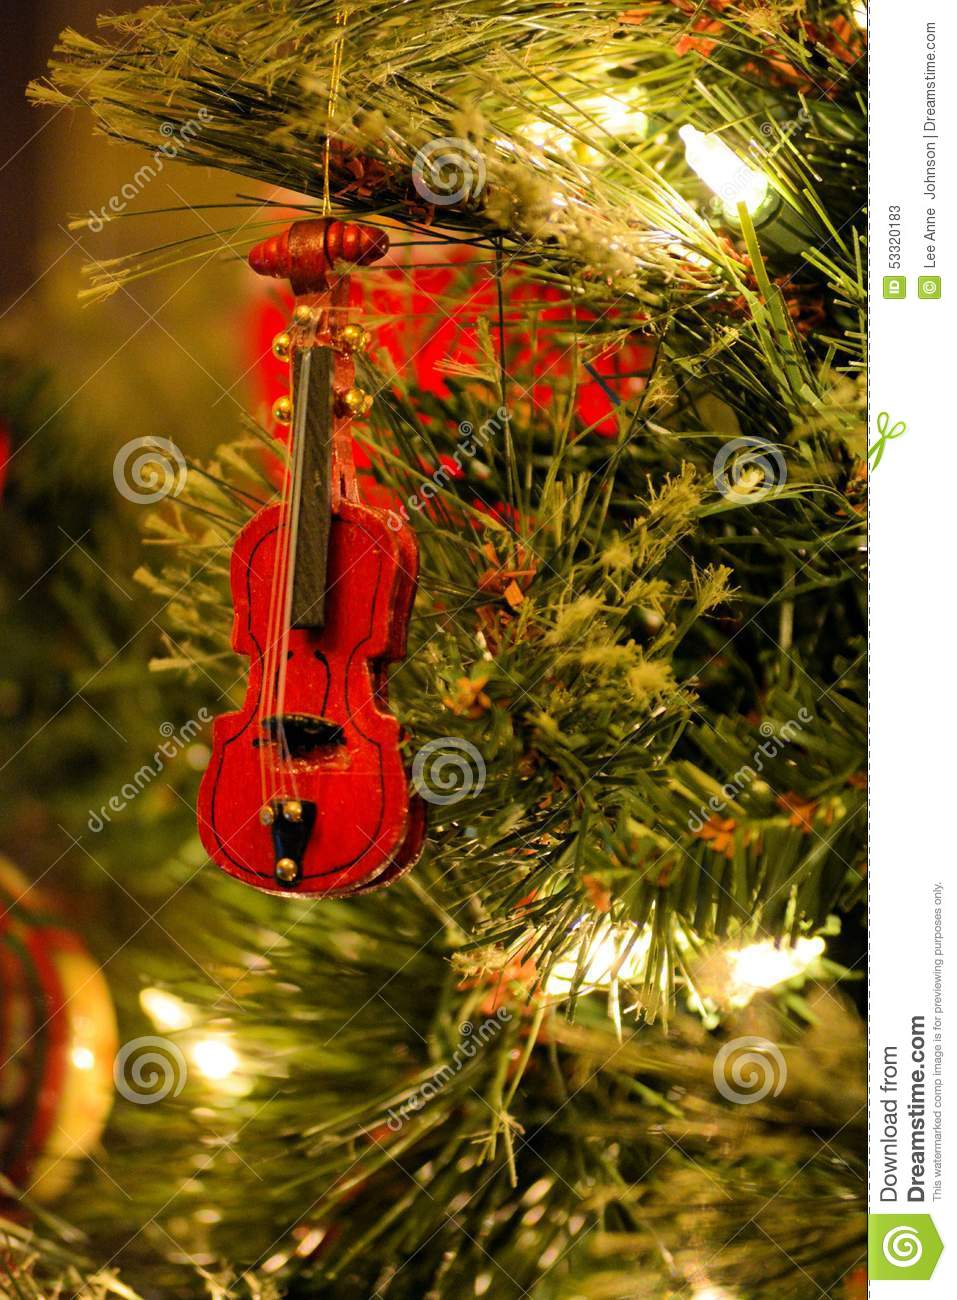 Christmas Tree Ornament Red Violin Fiddle Stock Image - Image of ...